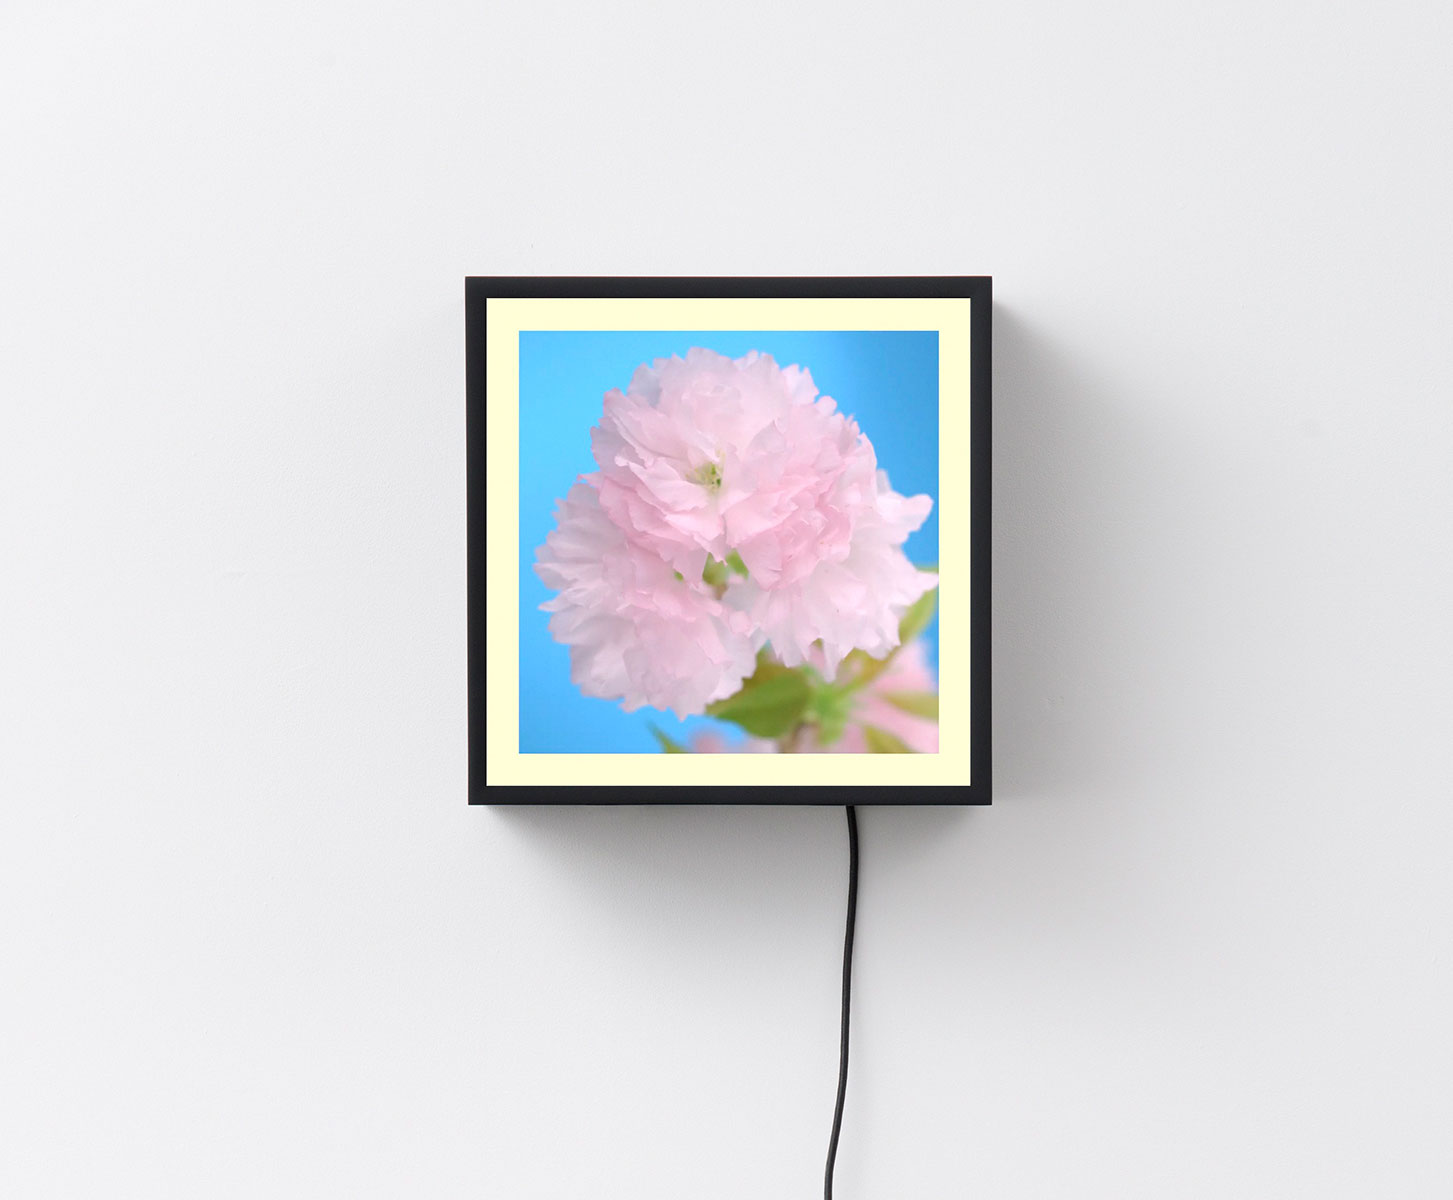 Owen Kydd. Cherry, 2015. Video on square digital display with media player.